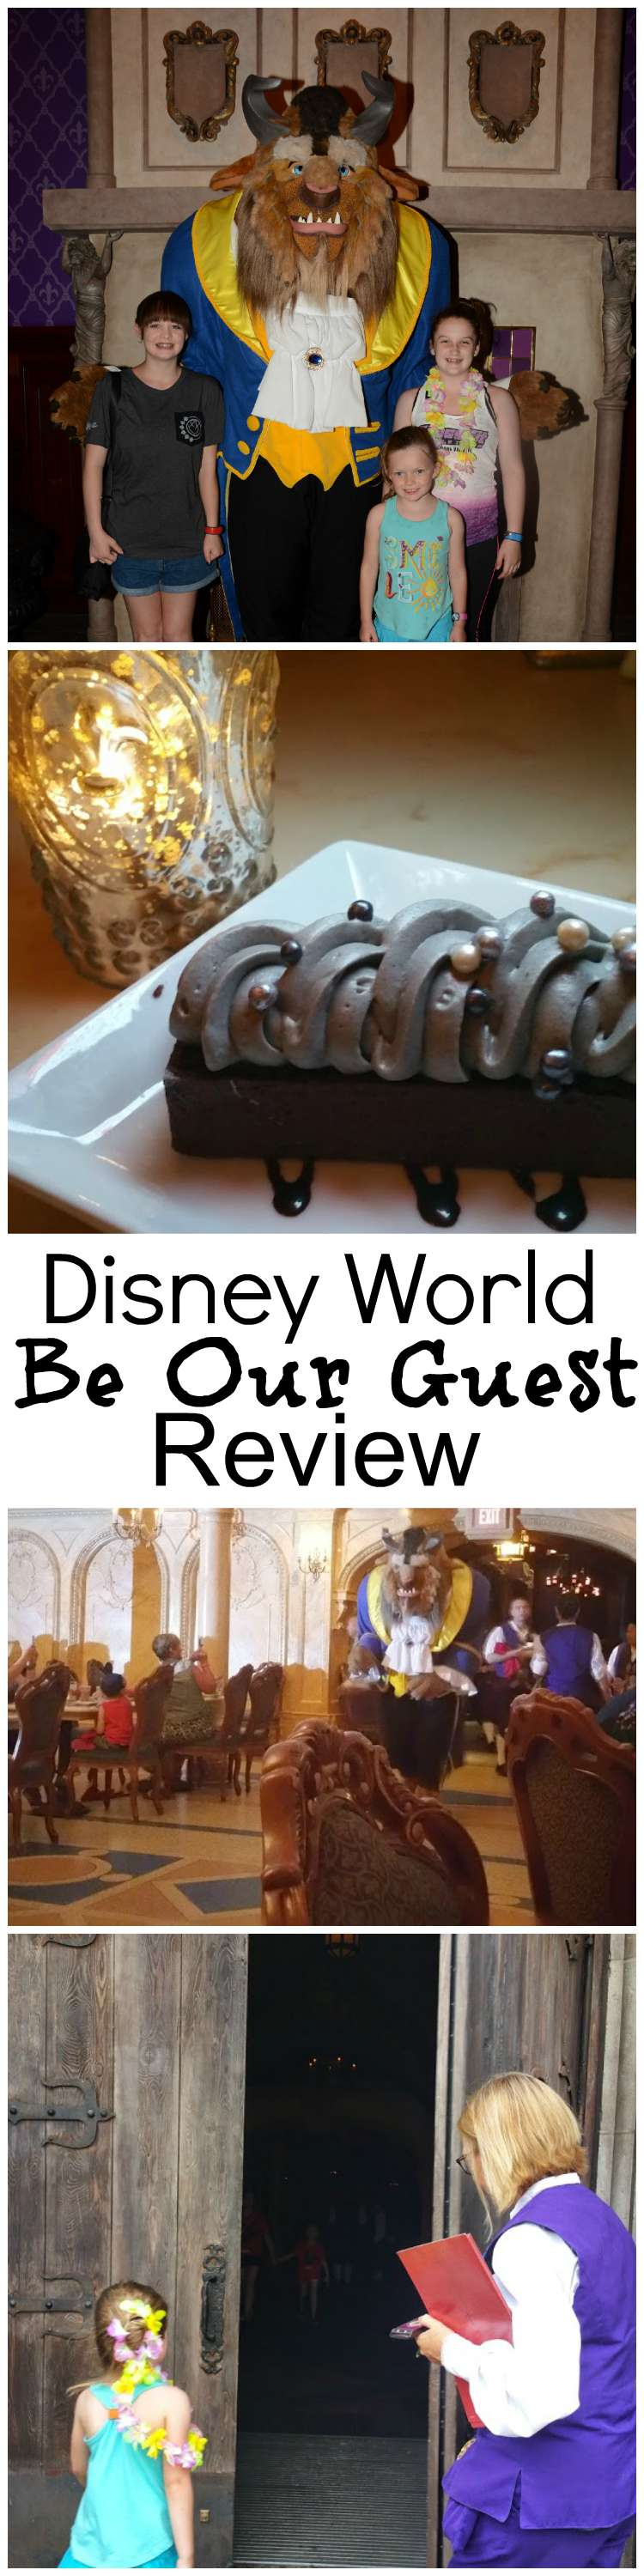 Disney World Be Our Guest Review